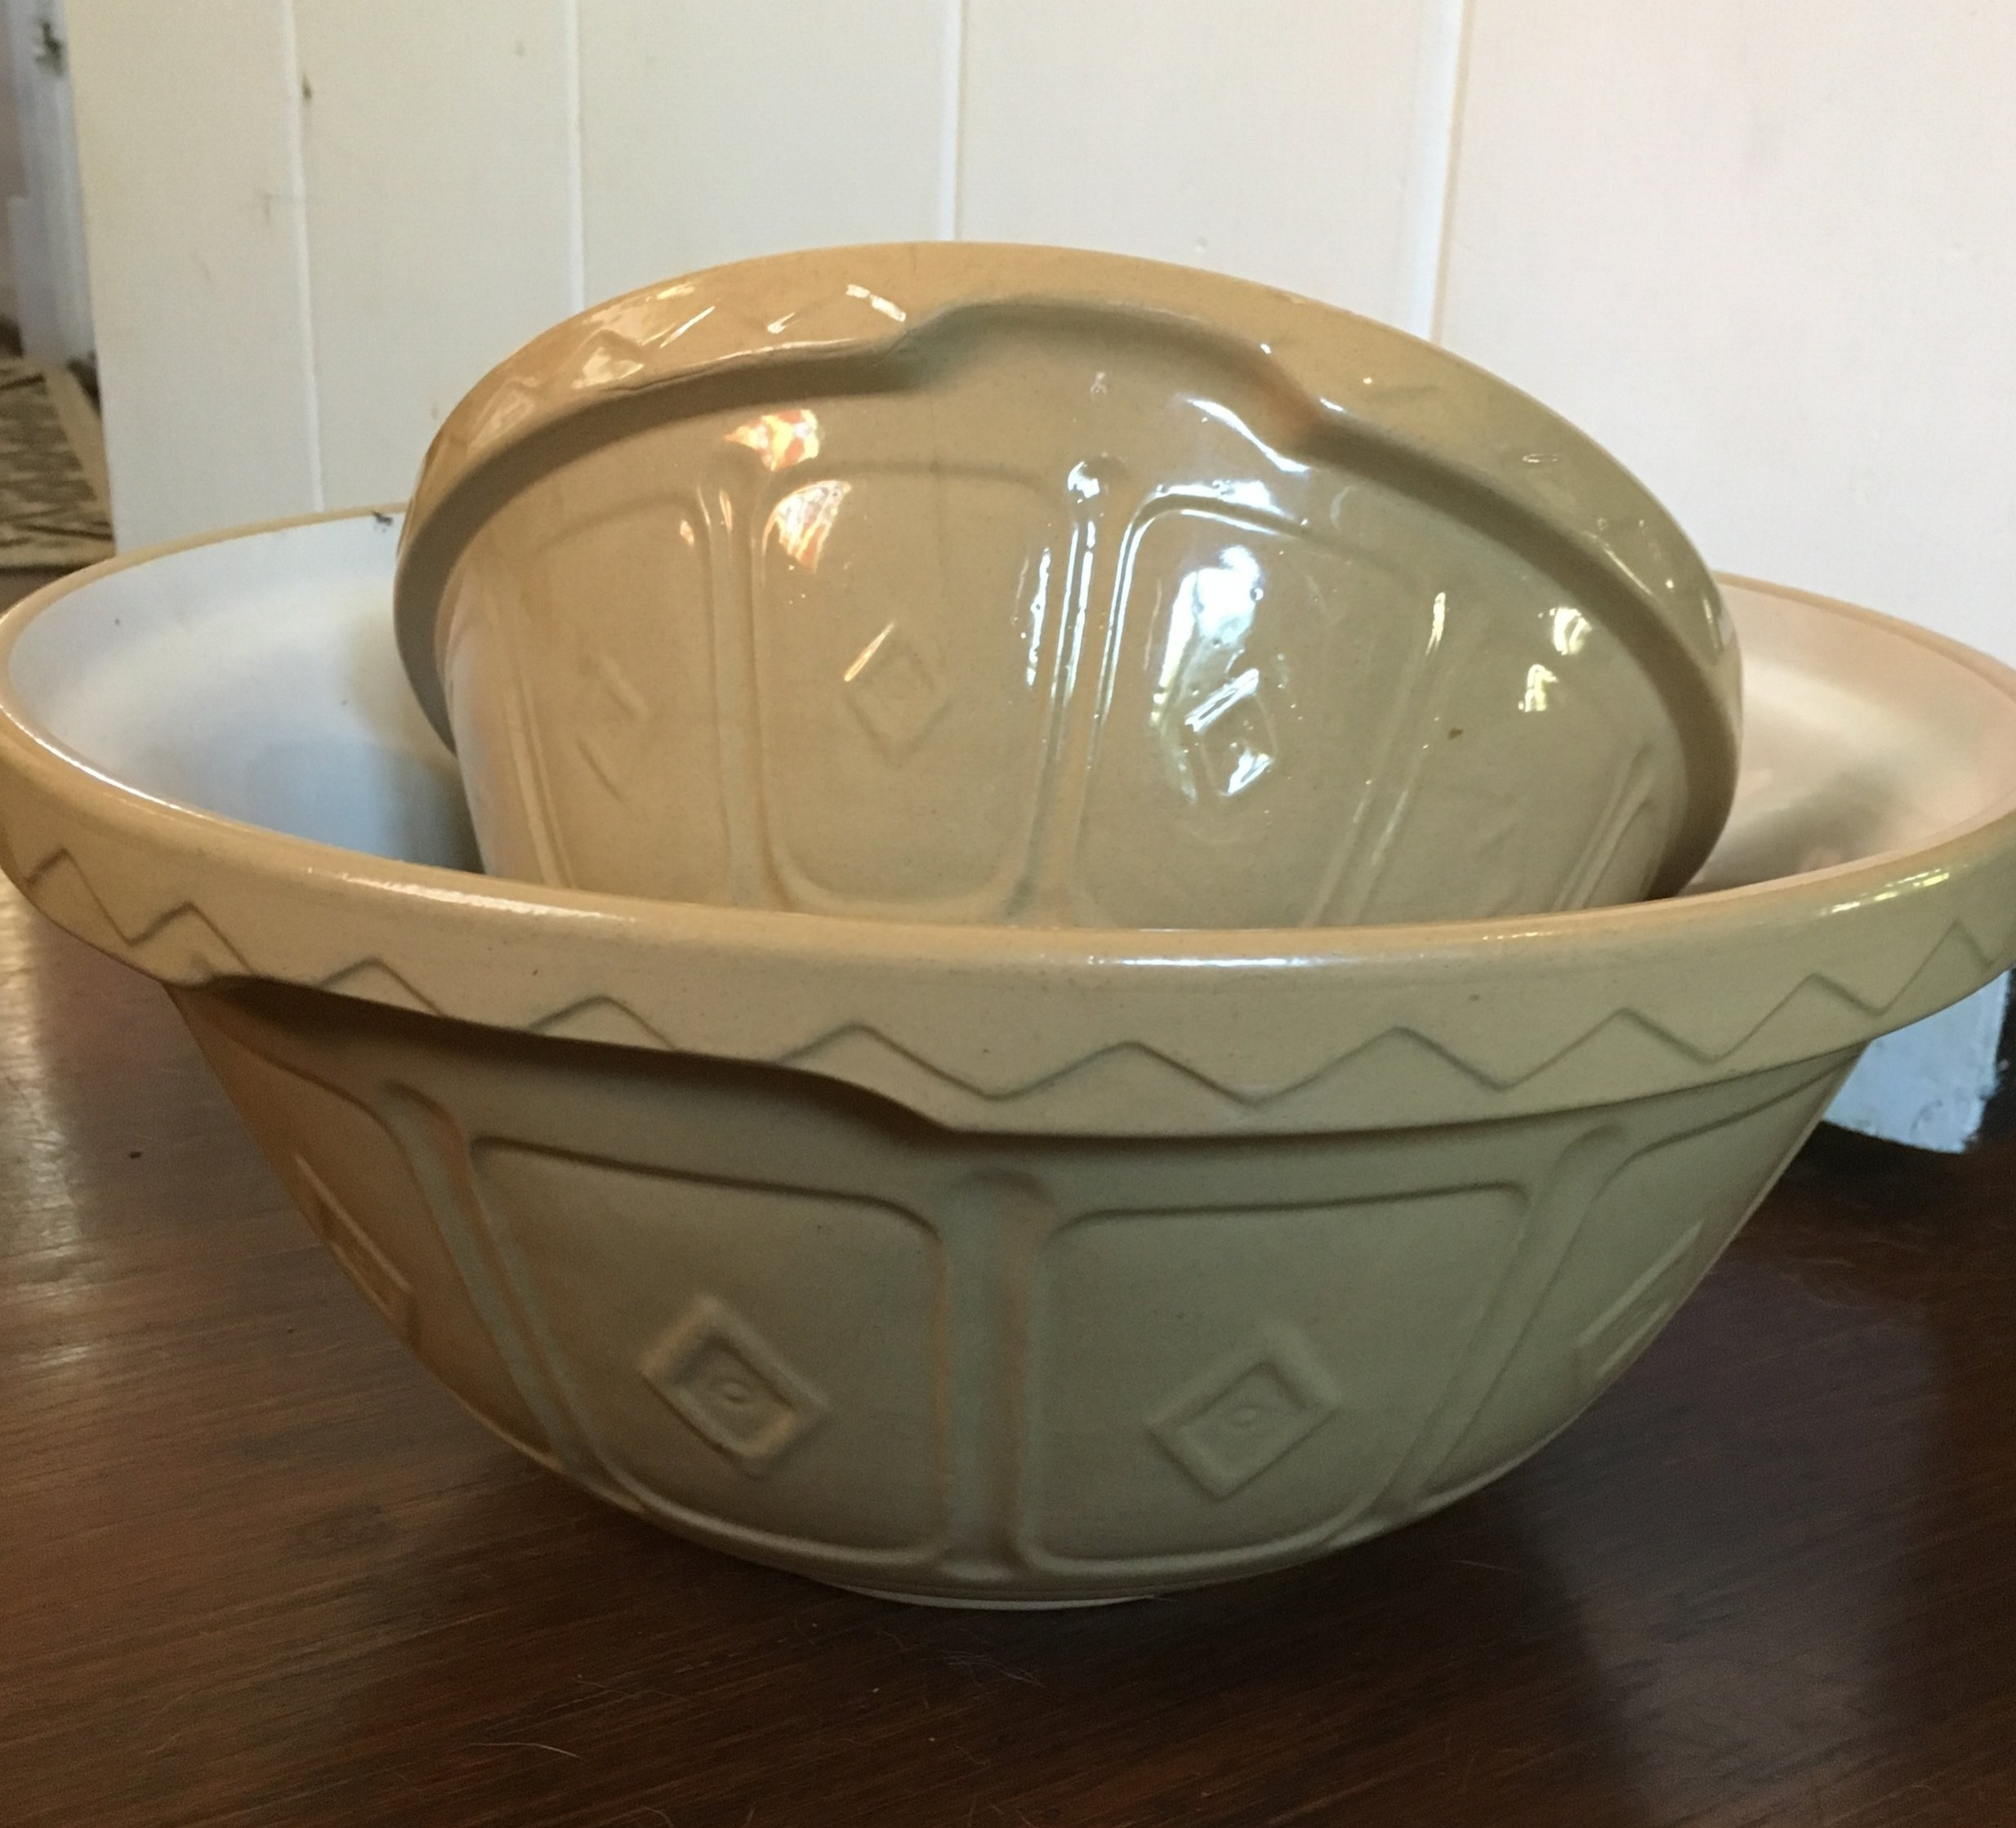 These Mason Cash bowls haven't changed  much since their introduction in 1901